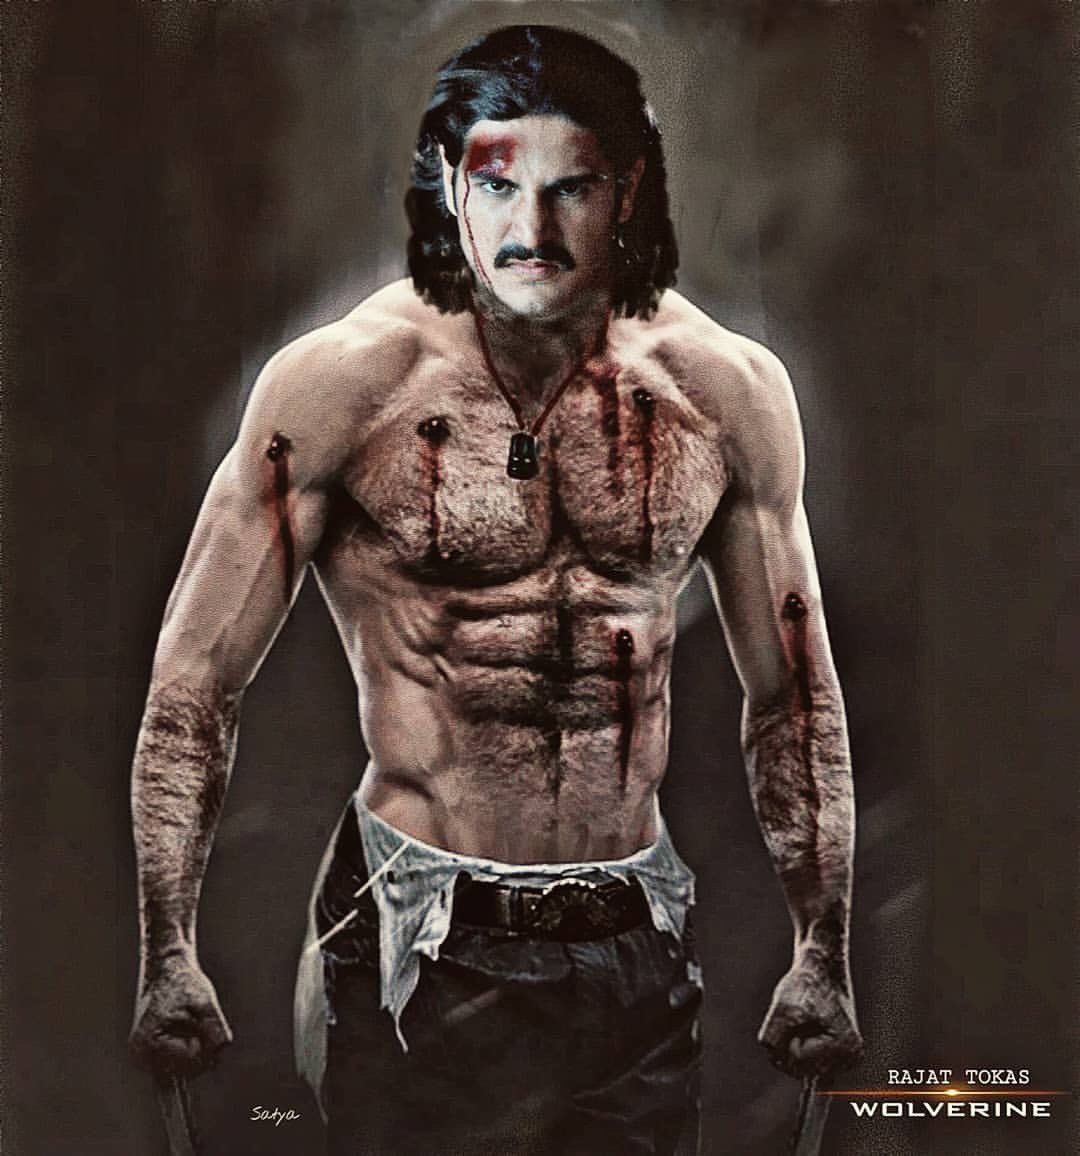 #rajattokasforwolverine #RajatTokas @RajjatTokas 10 months Wolverine journey is going continuously, please now give some positive response @Kevfeige @MarvelStudios pic.twitter.com/AKNn0H0zmr